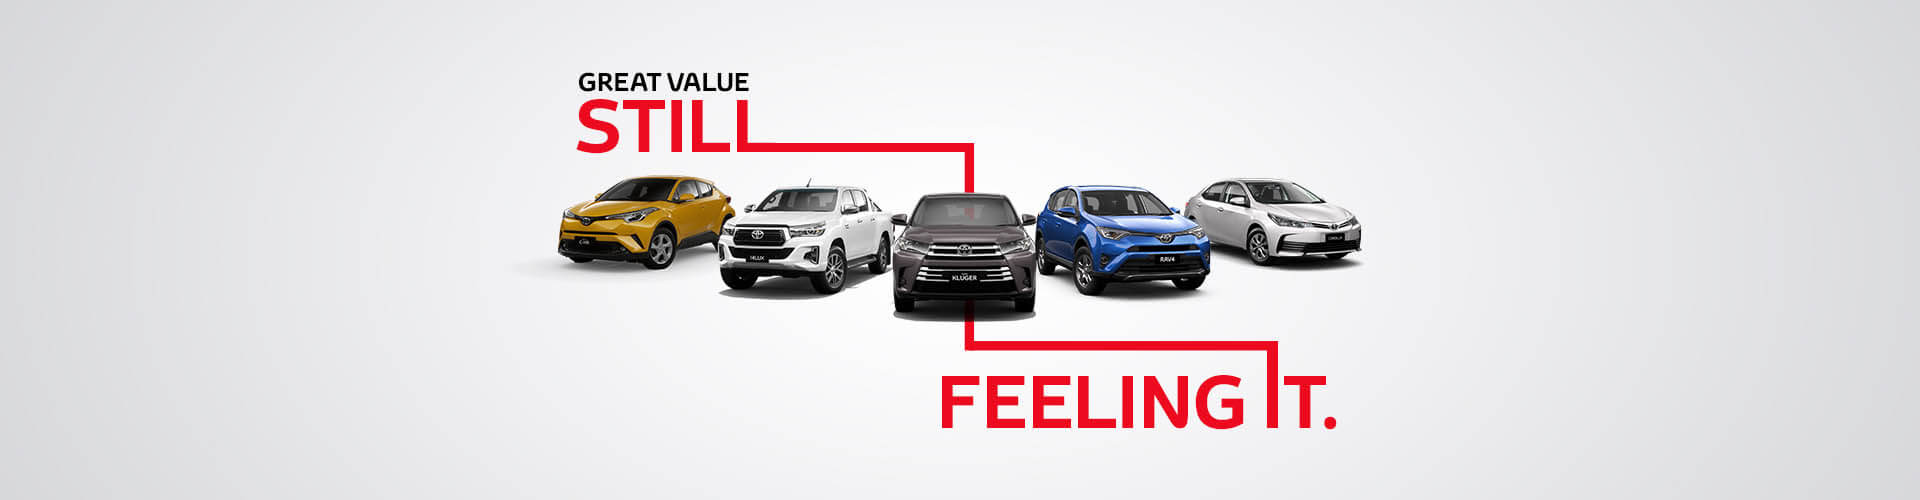 Toyota Special Offers | Great Value. Still Feeling It.